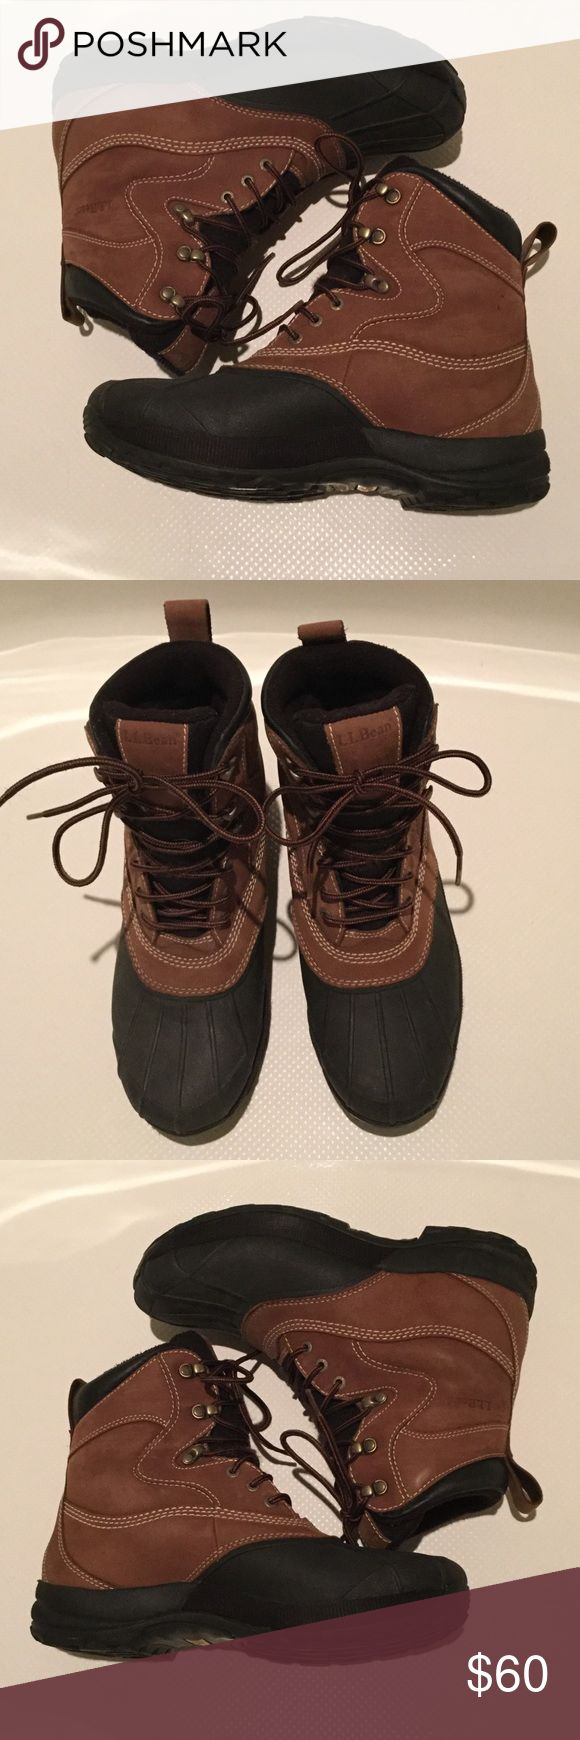 LL Bean winter boots size 9. Waterproof. Insulated LL Bean winter boots. Waterproof and insulated. Men's size 9. Pimaloft 200 gram insulation L.L. Bean Shoes Rain & Snow Boots